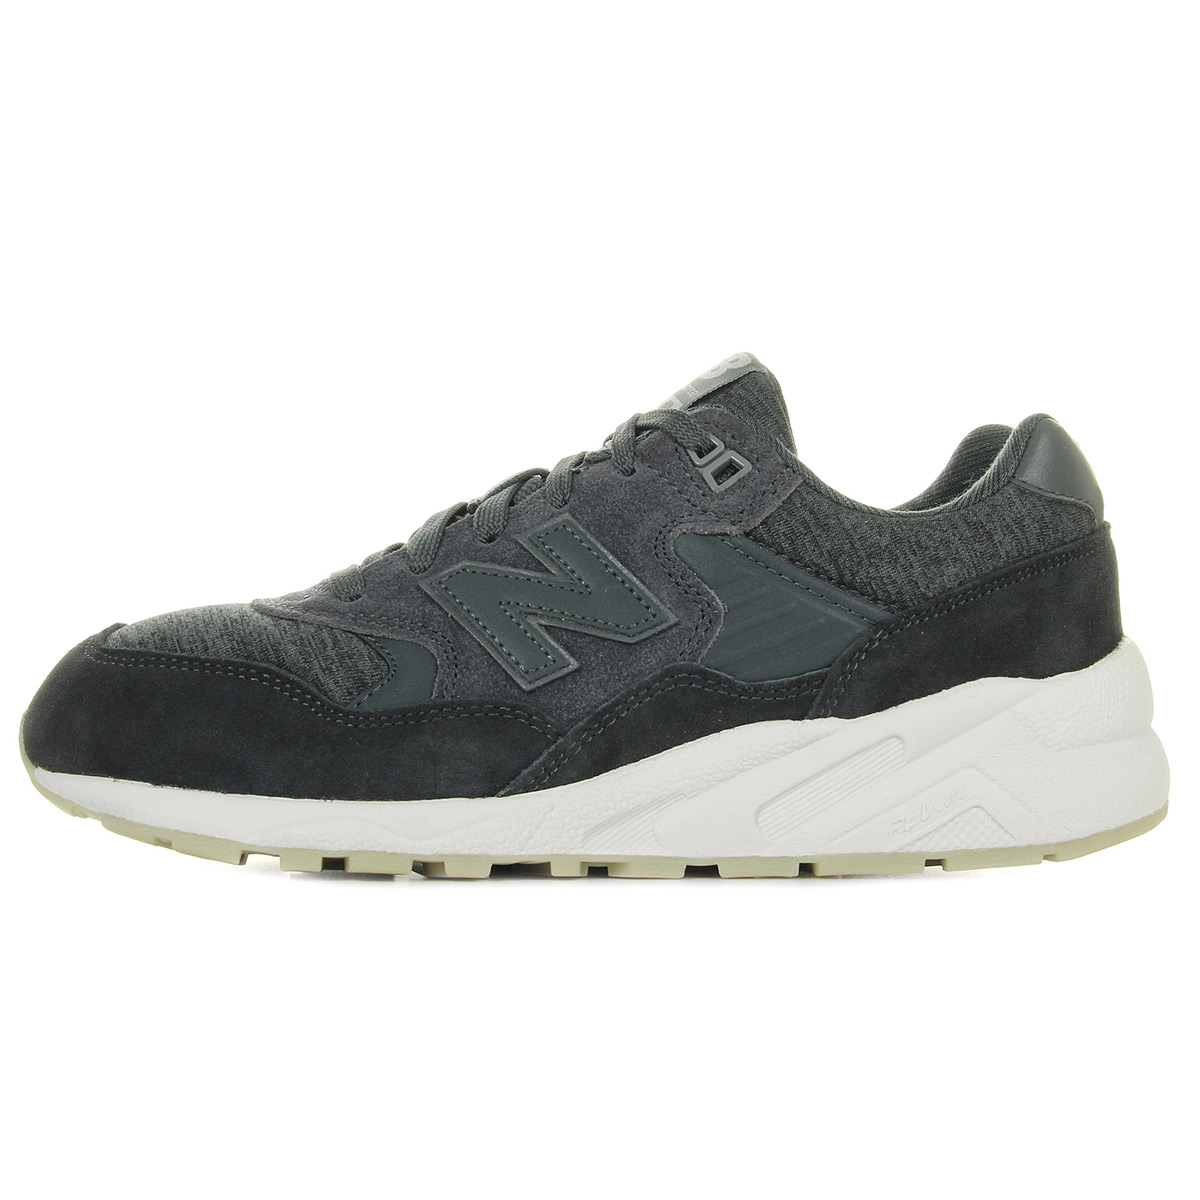 New Balance WRT580 HG WRT580HG, Baskets mode femme